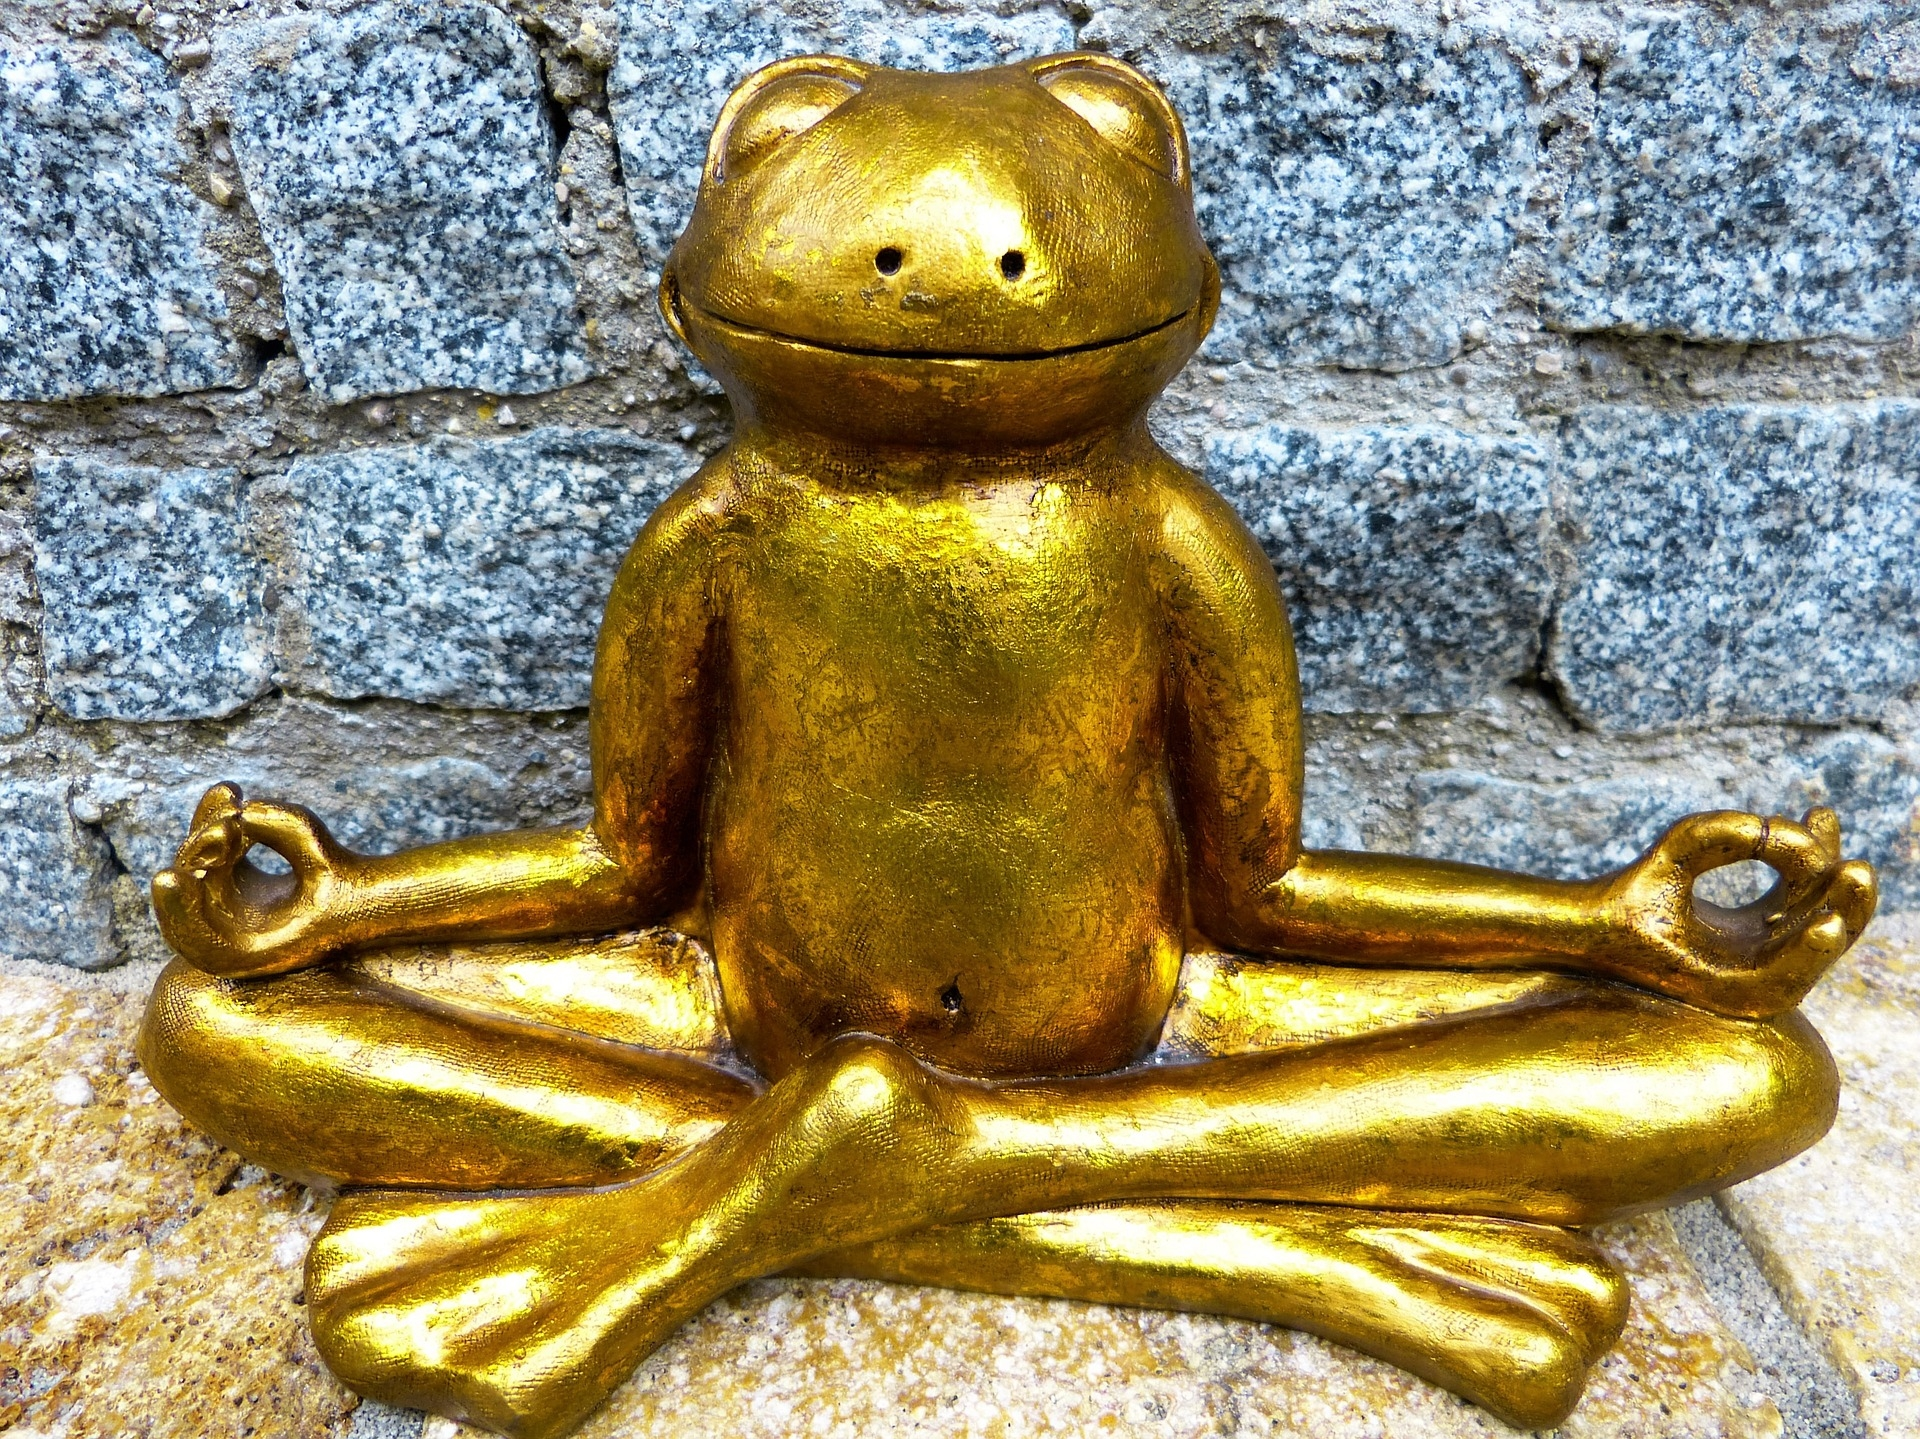 Meditation Helps Build and Nurture Resilience